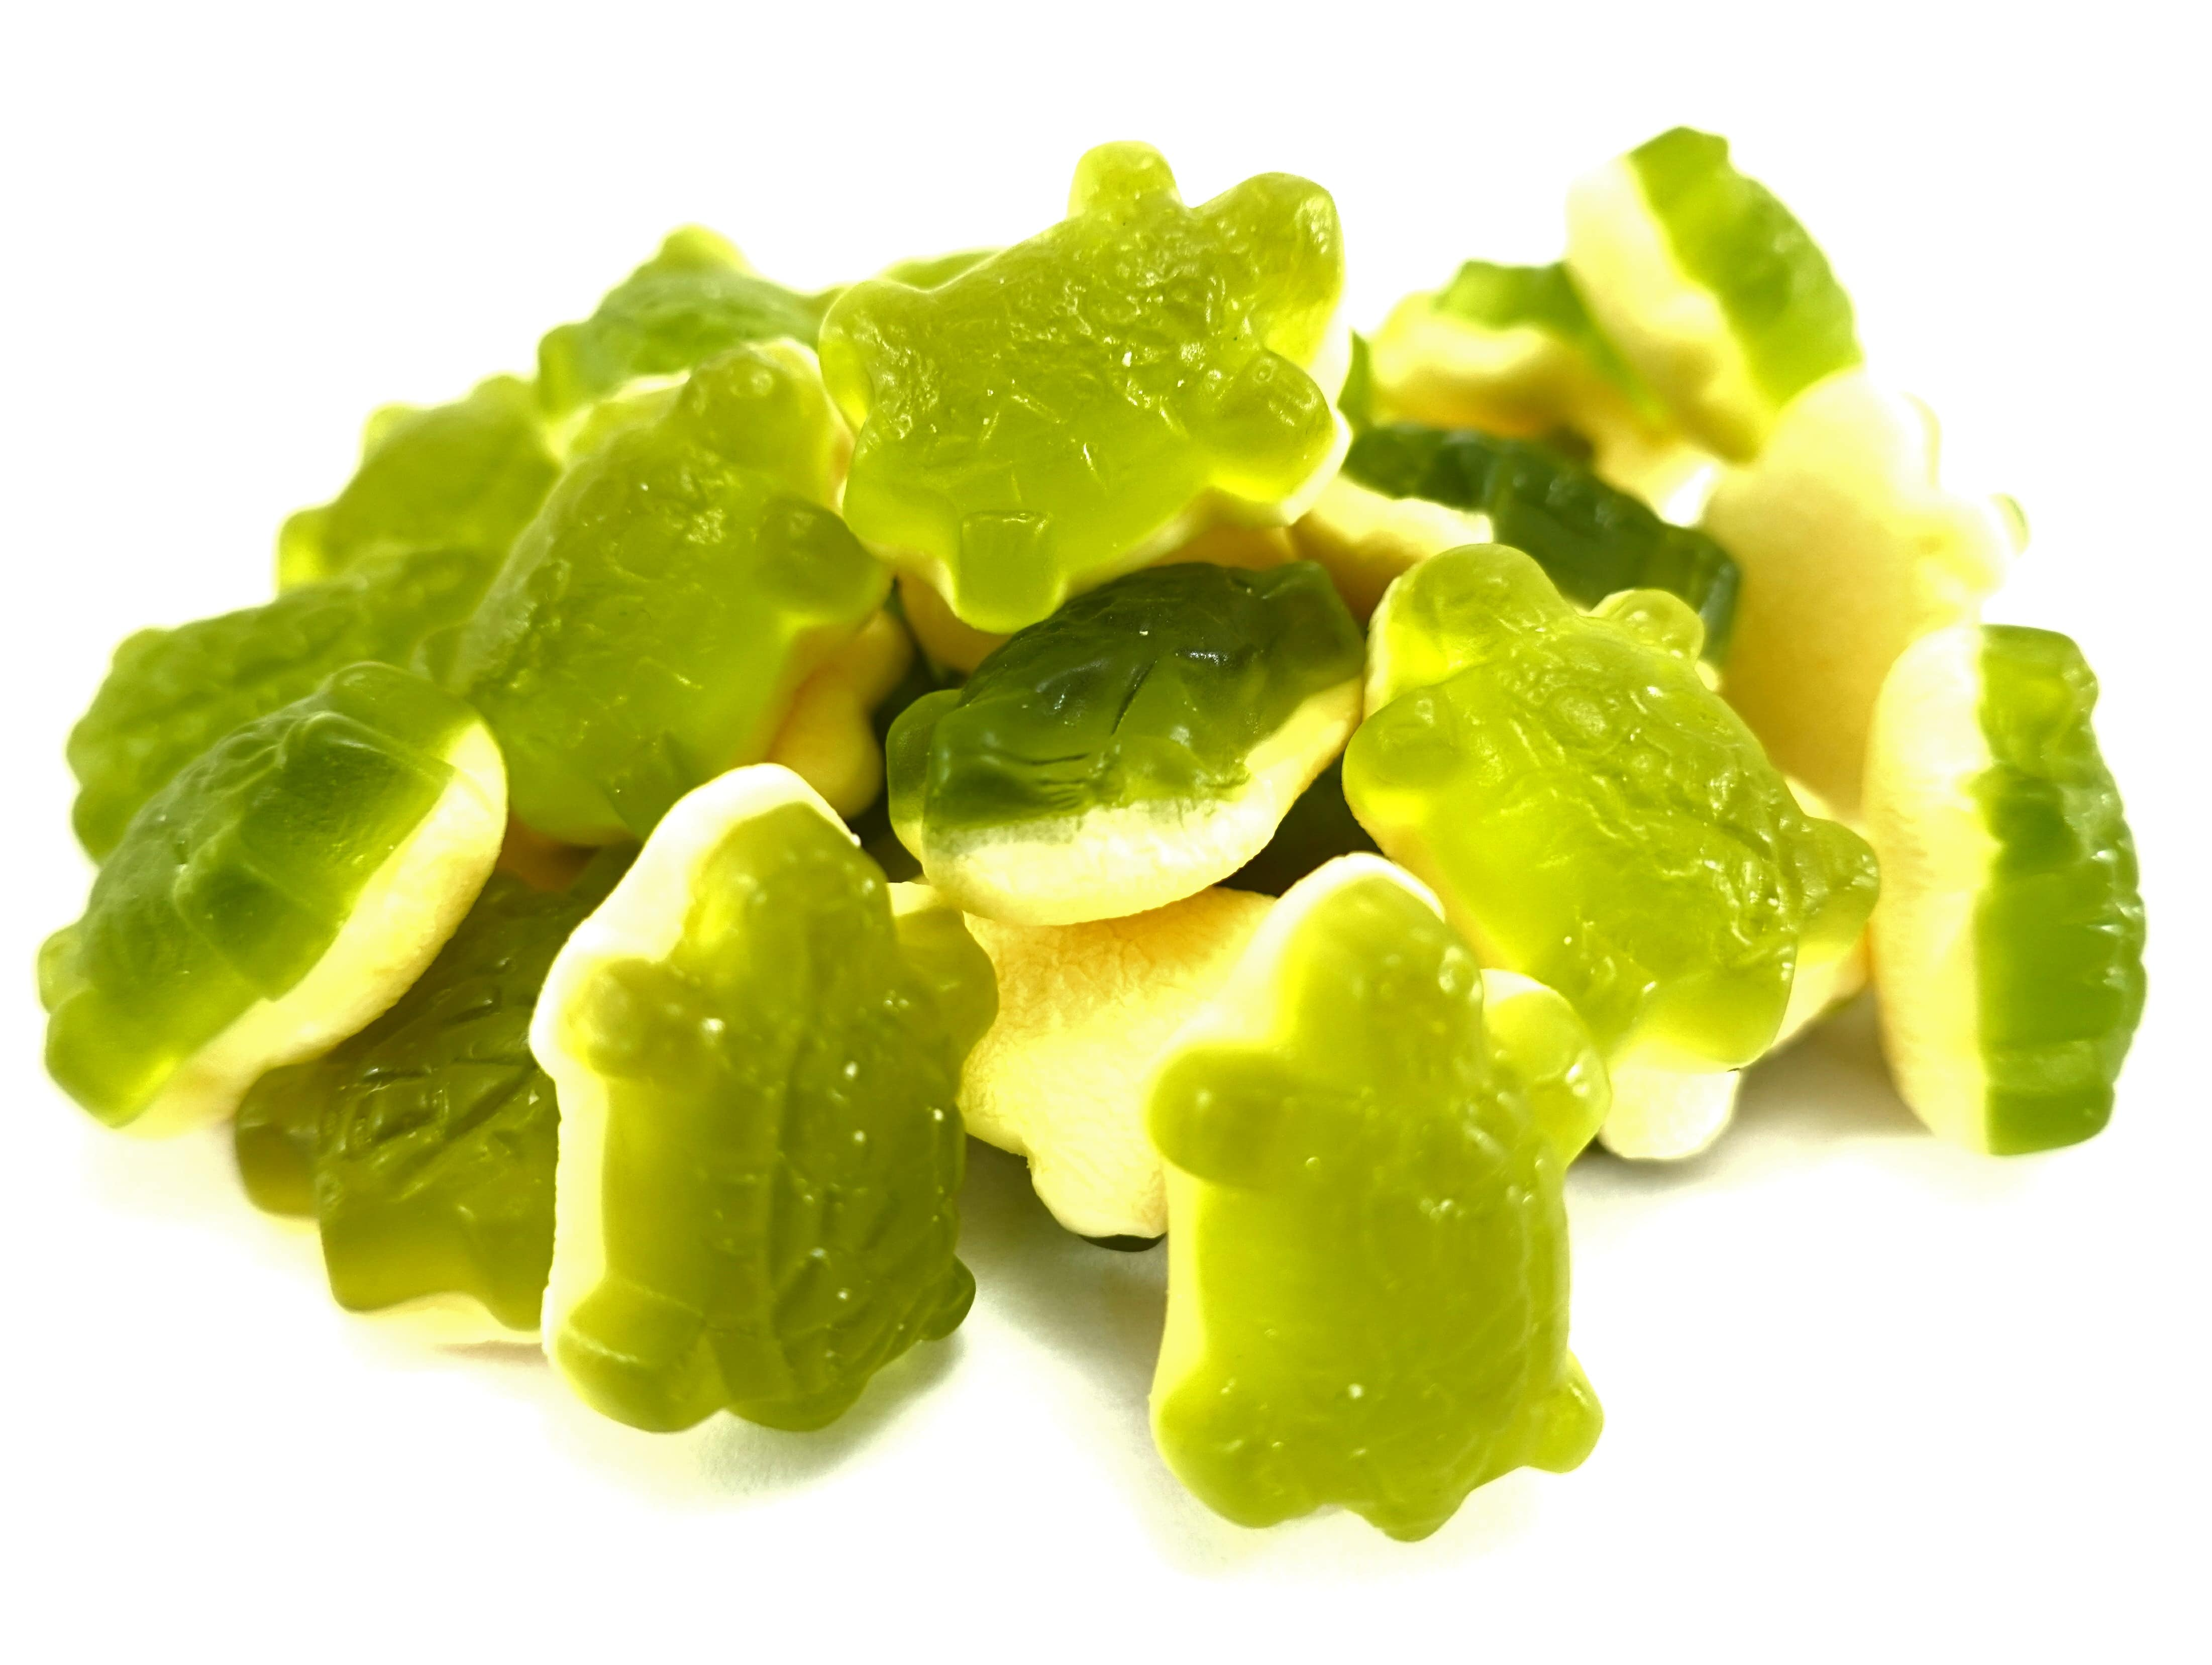 Turtle shaped jelly sweets